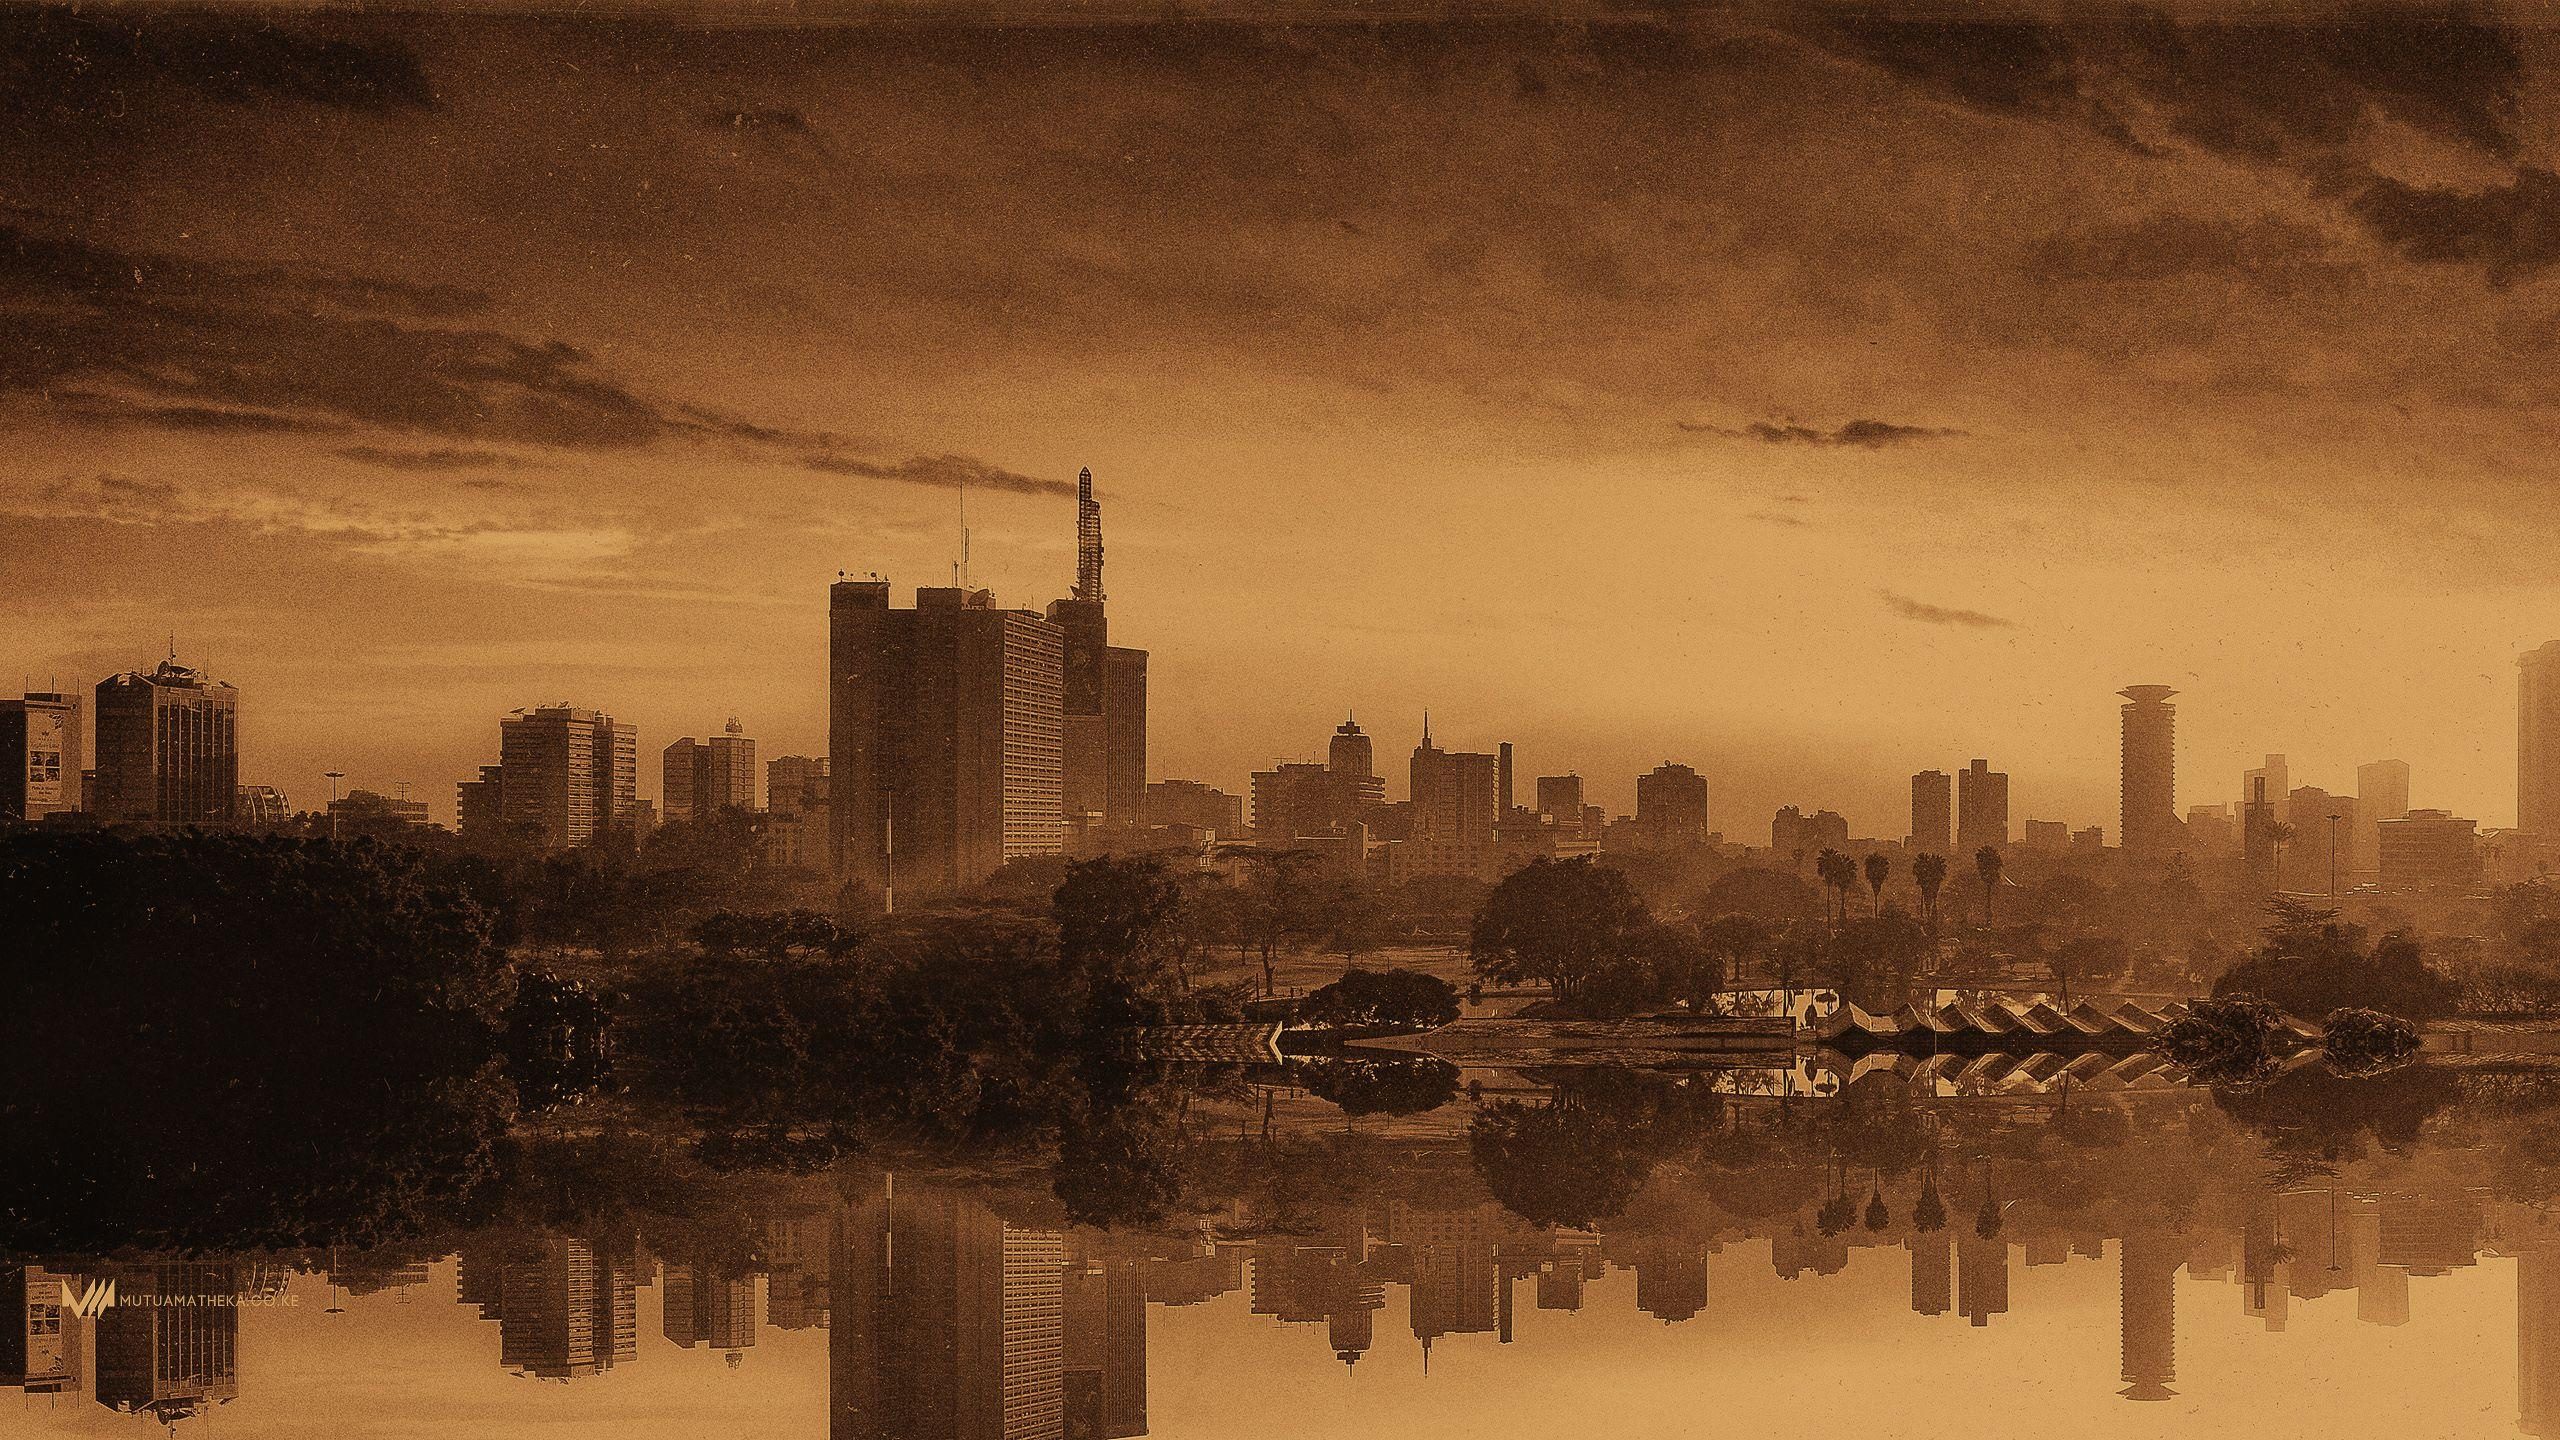 Wallpaper Monday [116] – Nairobi..!! | Mutua Matheka